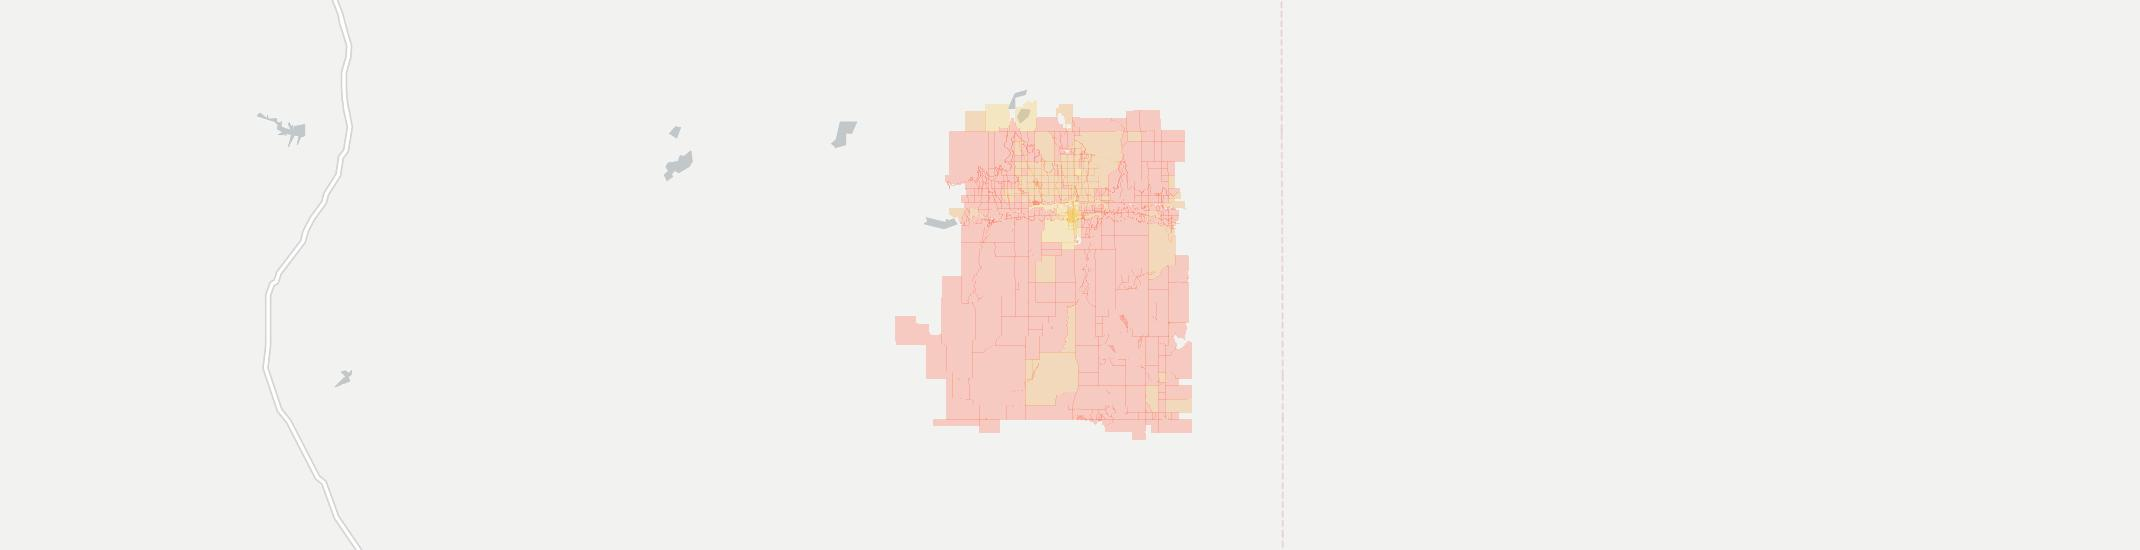 Lamar Co Has 10 Internet Service Providers Up To 500 Mbps